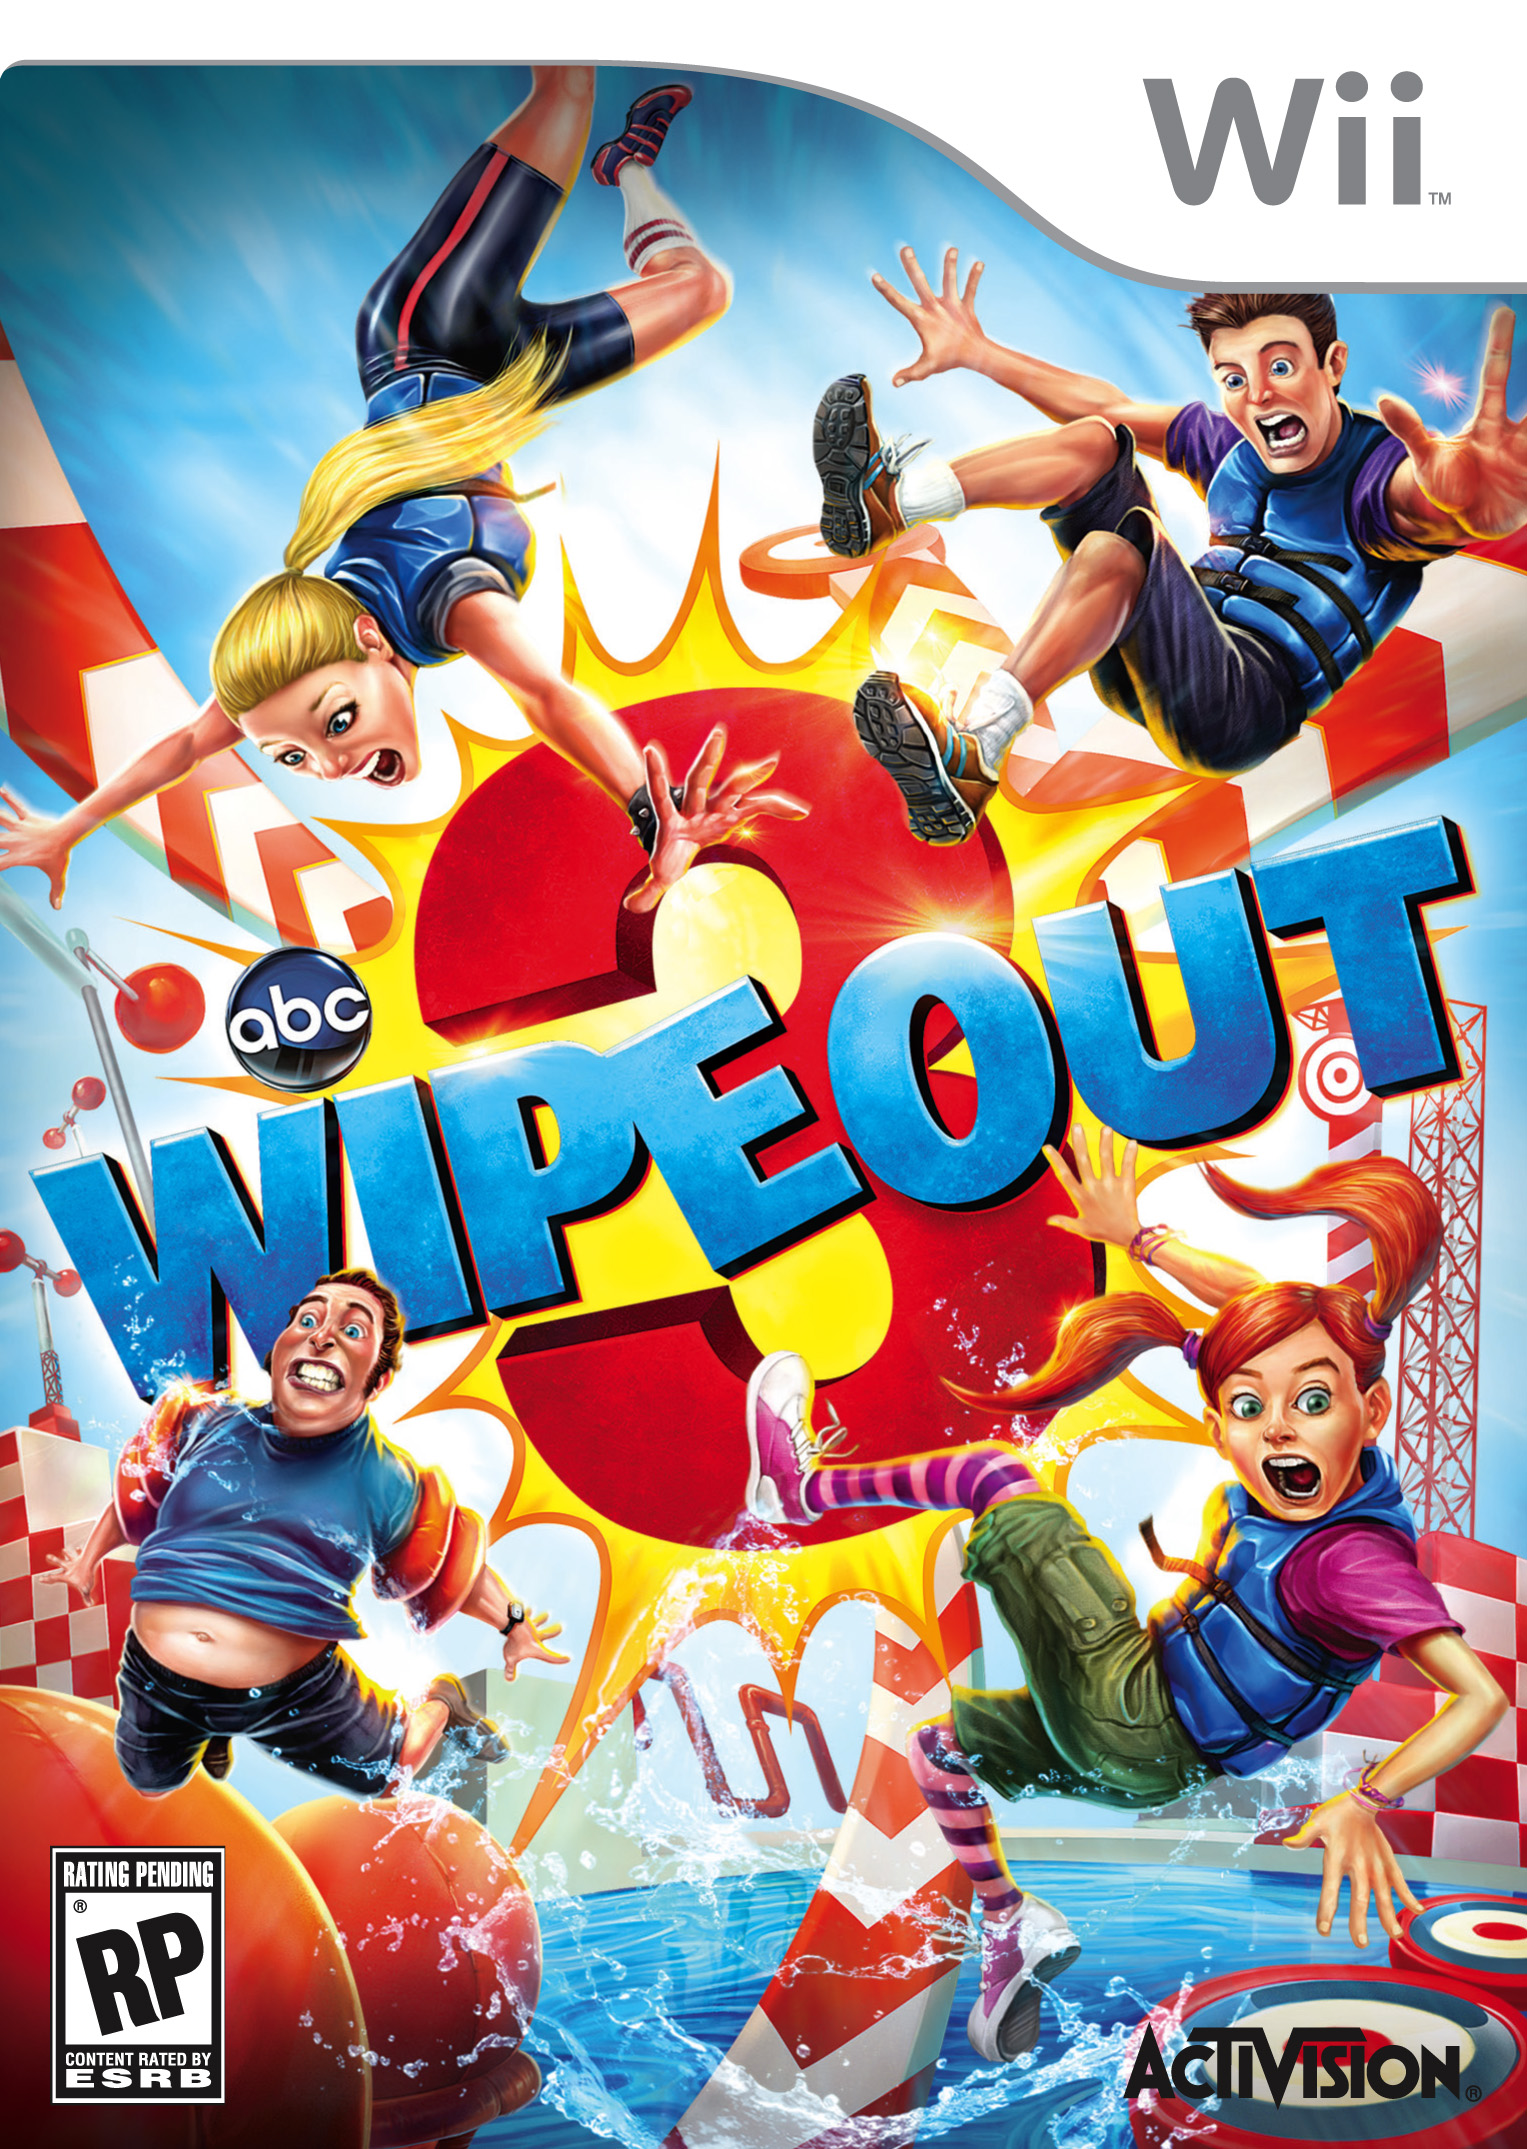 Now You Can Wipeout In Your Own Family Room